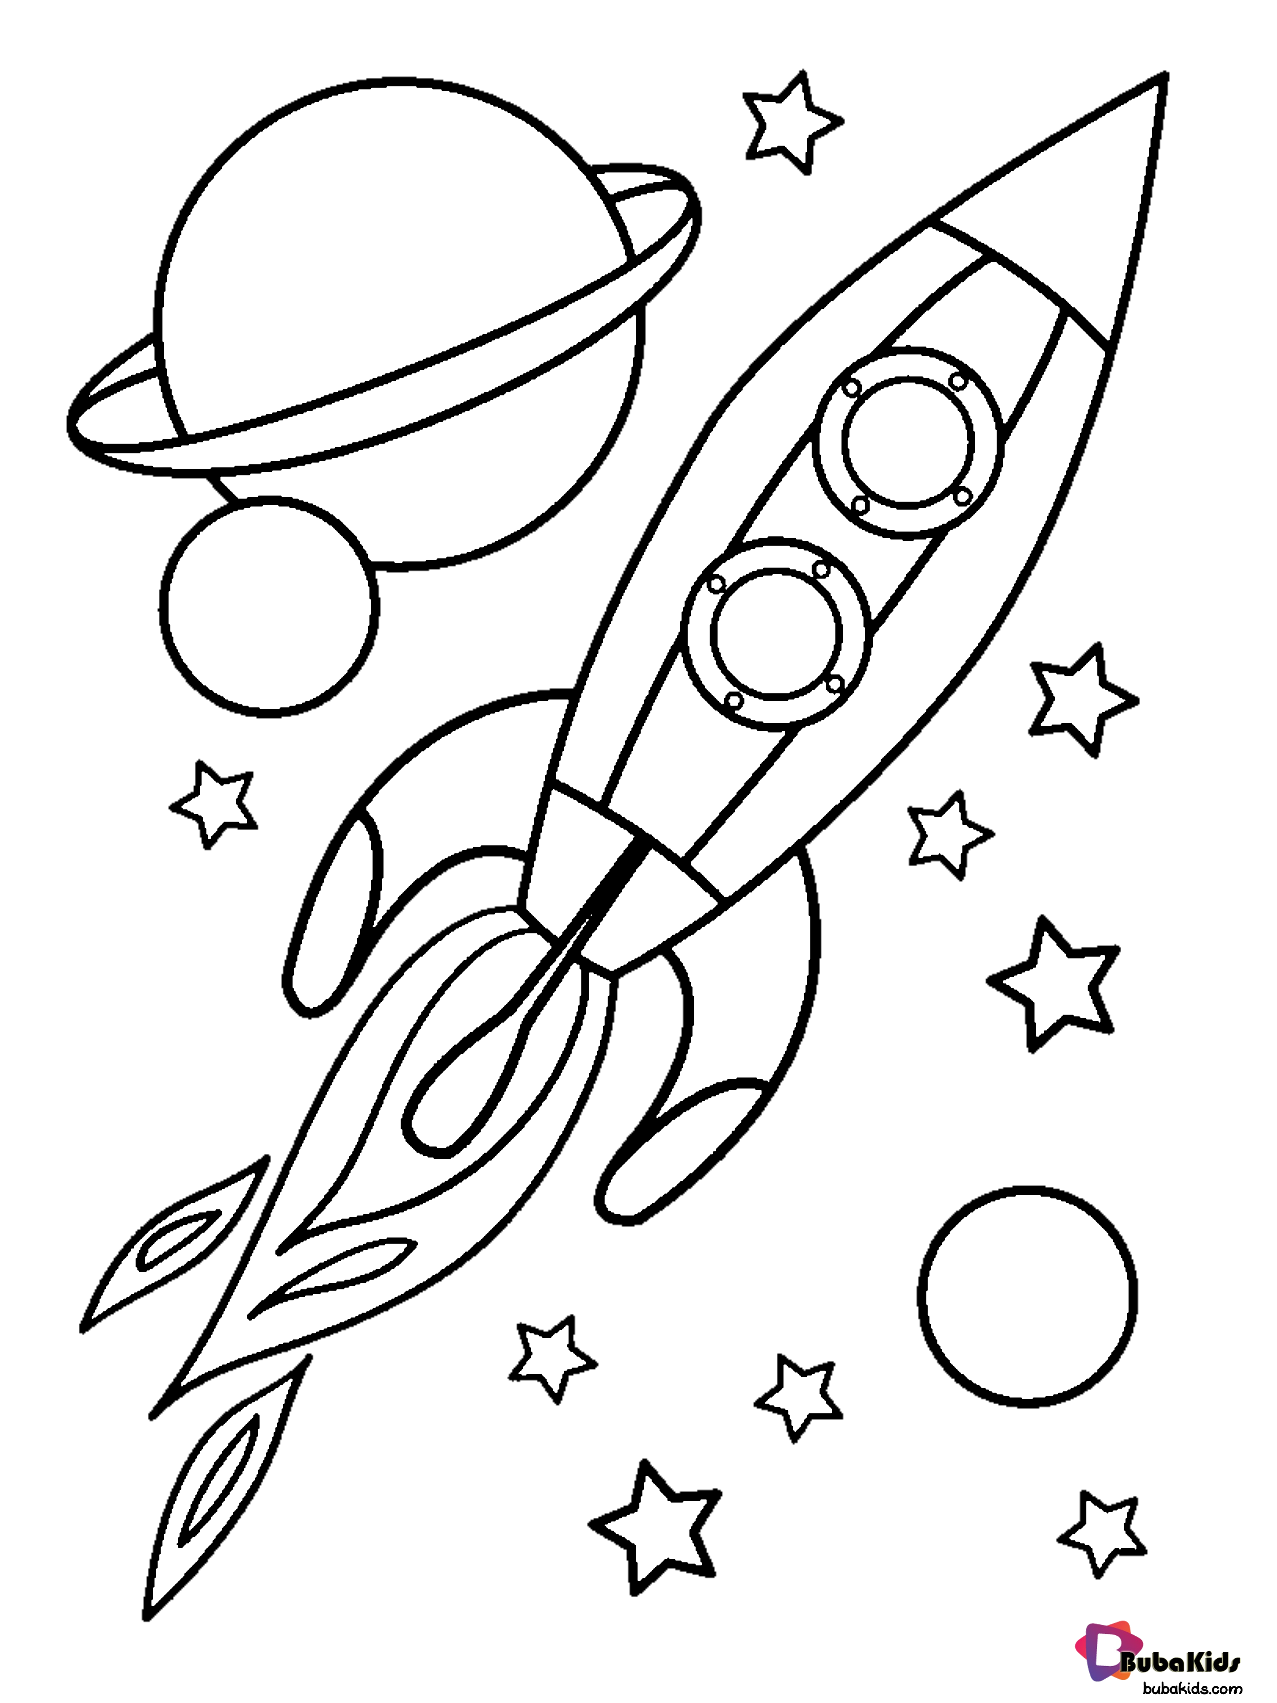 Planets Stars And Rocket In Outer Space Coloring Page Collection Of Cartoon Coloring Planet Coloring Pages Space Coloring Pages Free Printable Coloring Pages